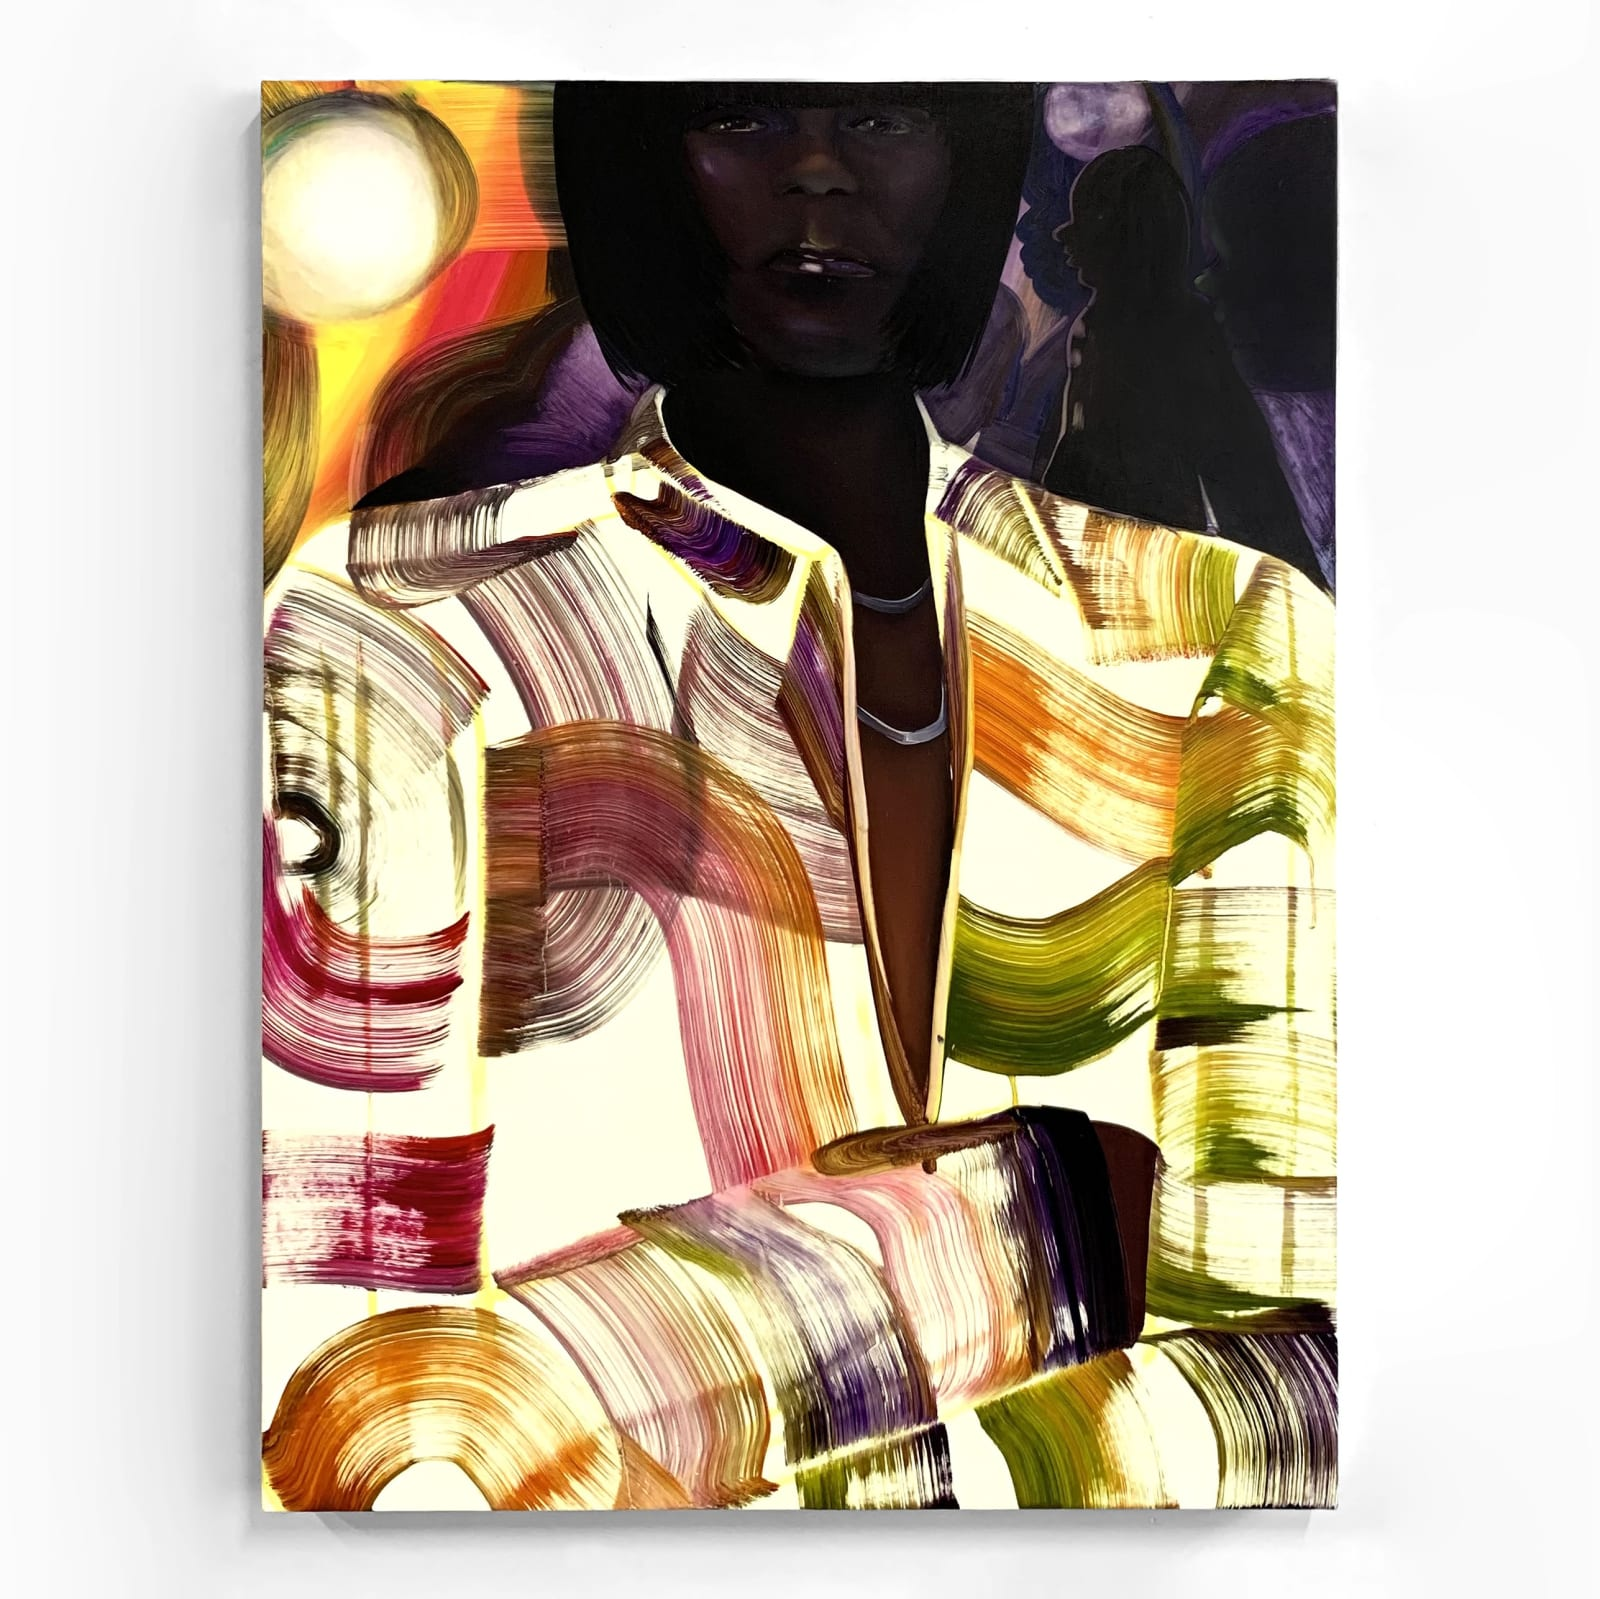 With wide brush strokes, a white coat is adorned with colorful paint, just behind which a Black face with short hair watches expressionless, arms crossed, with figures shuffling past in the background.